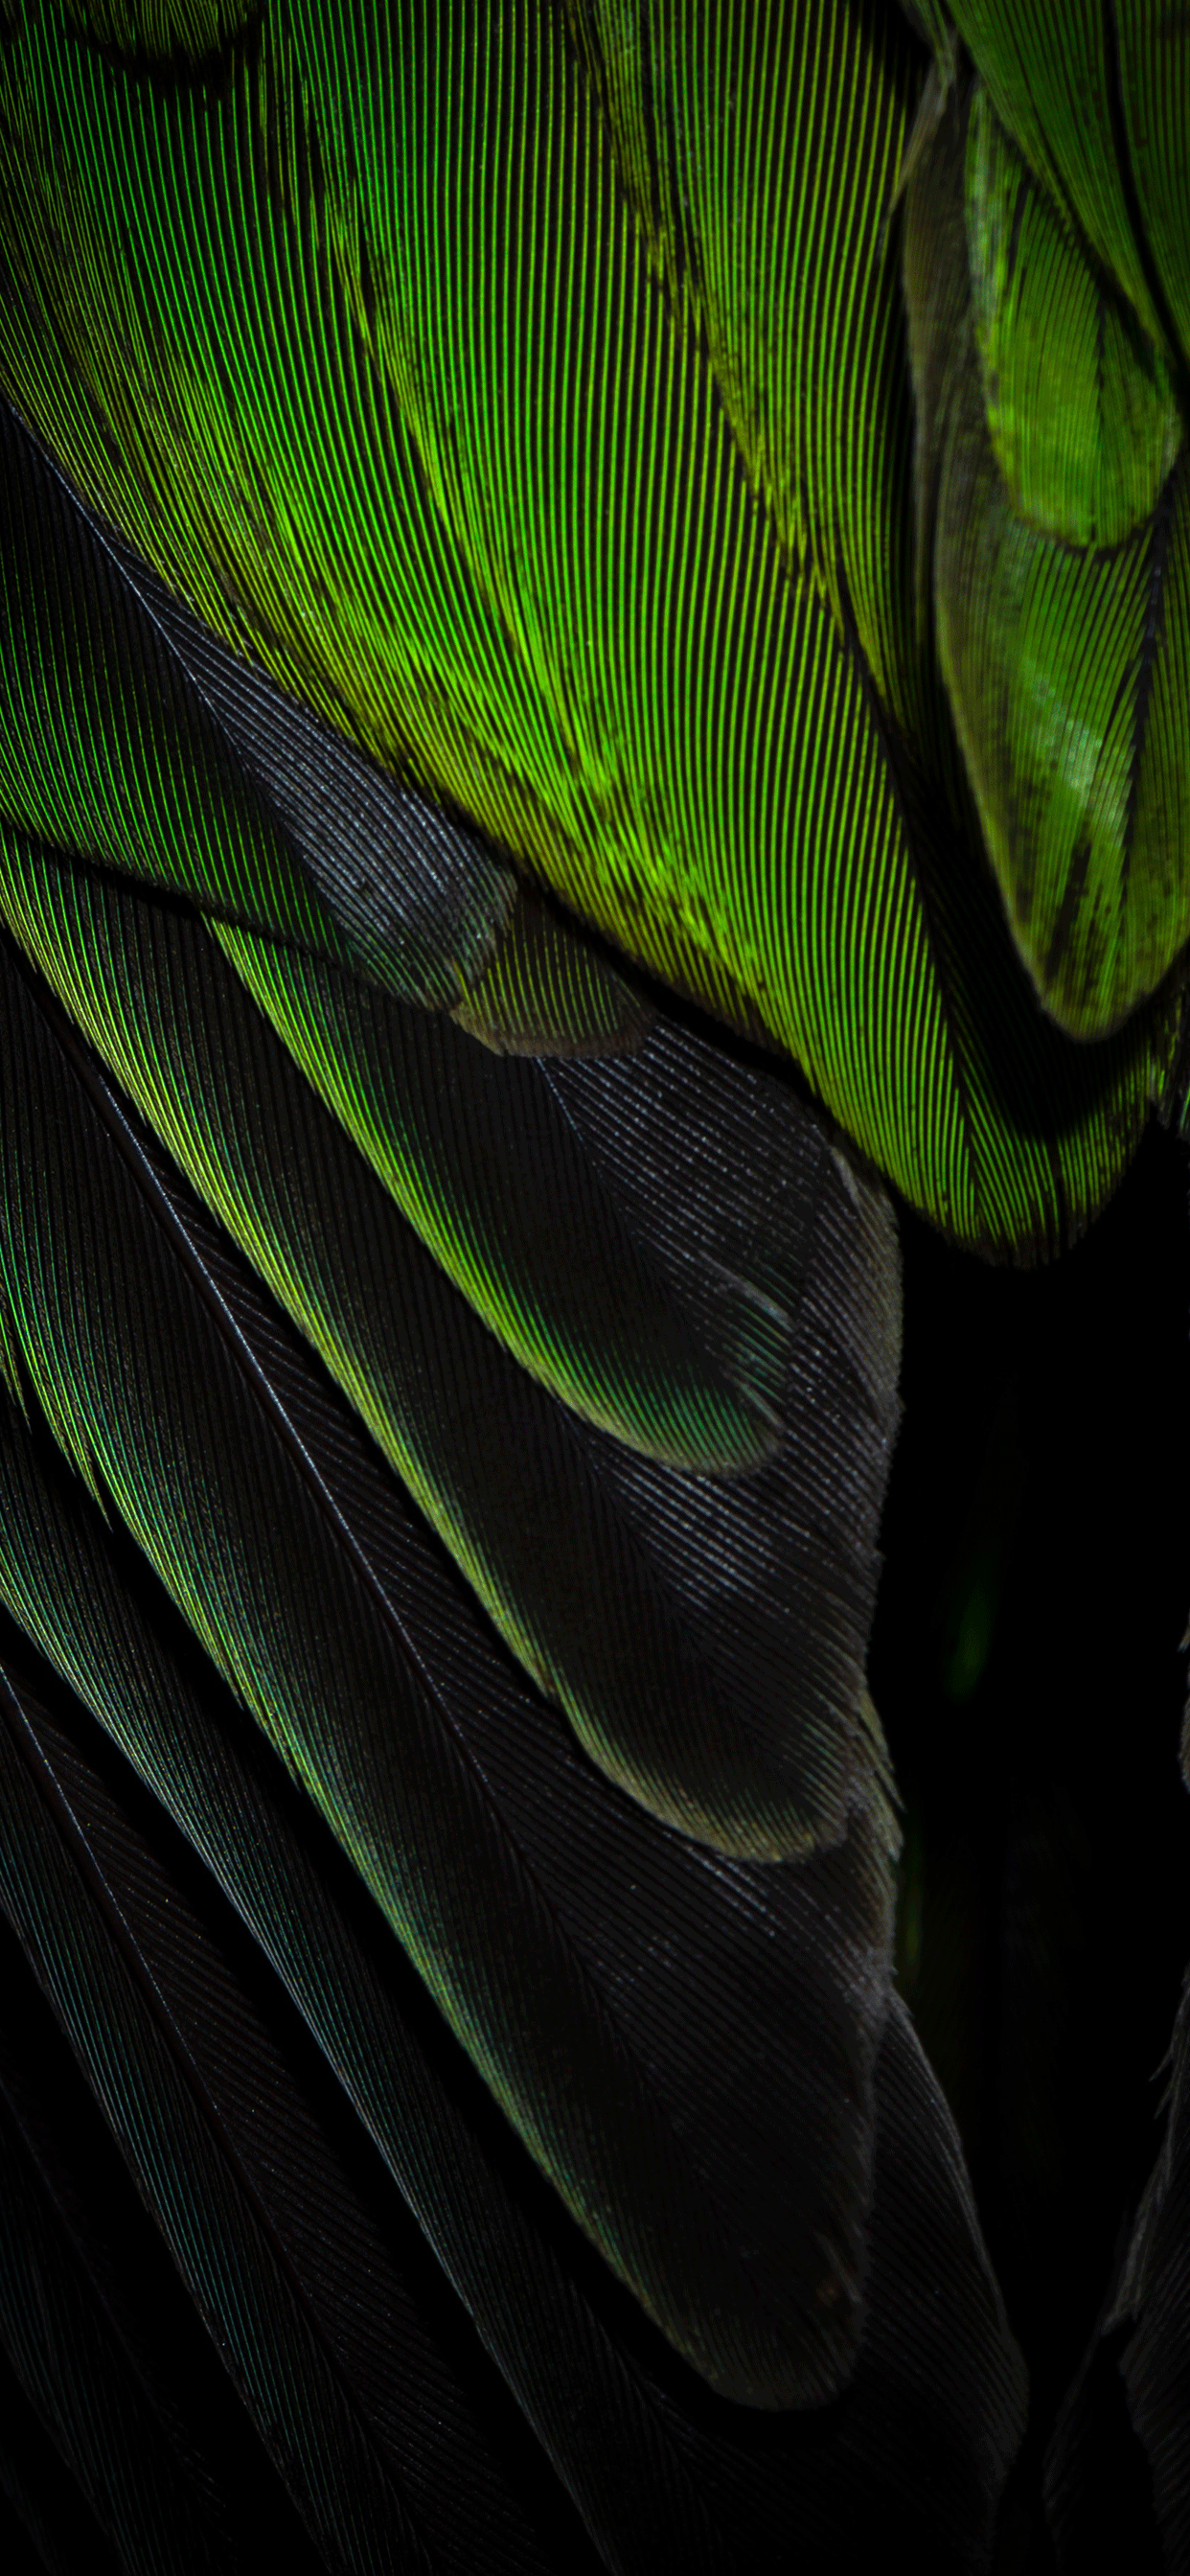 iPhone wallpaper feathers green black Fonds d'écran iPhone du 19/02/2019